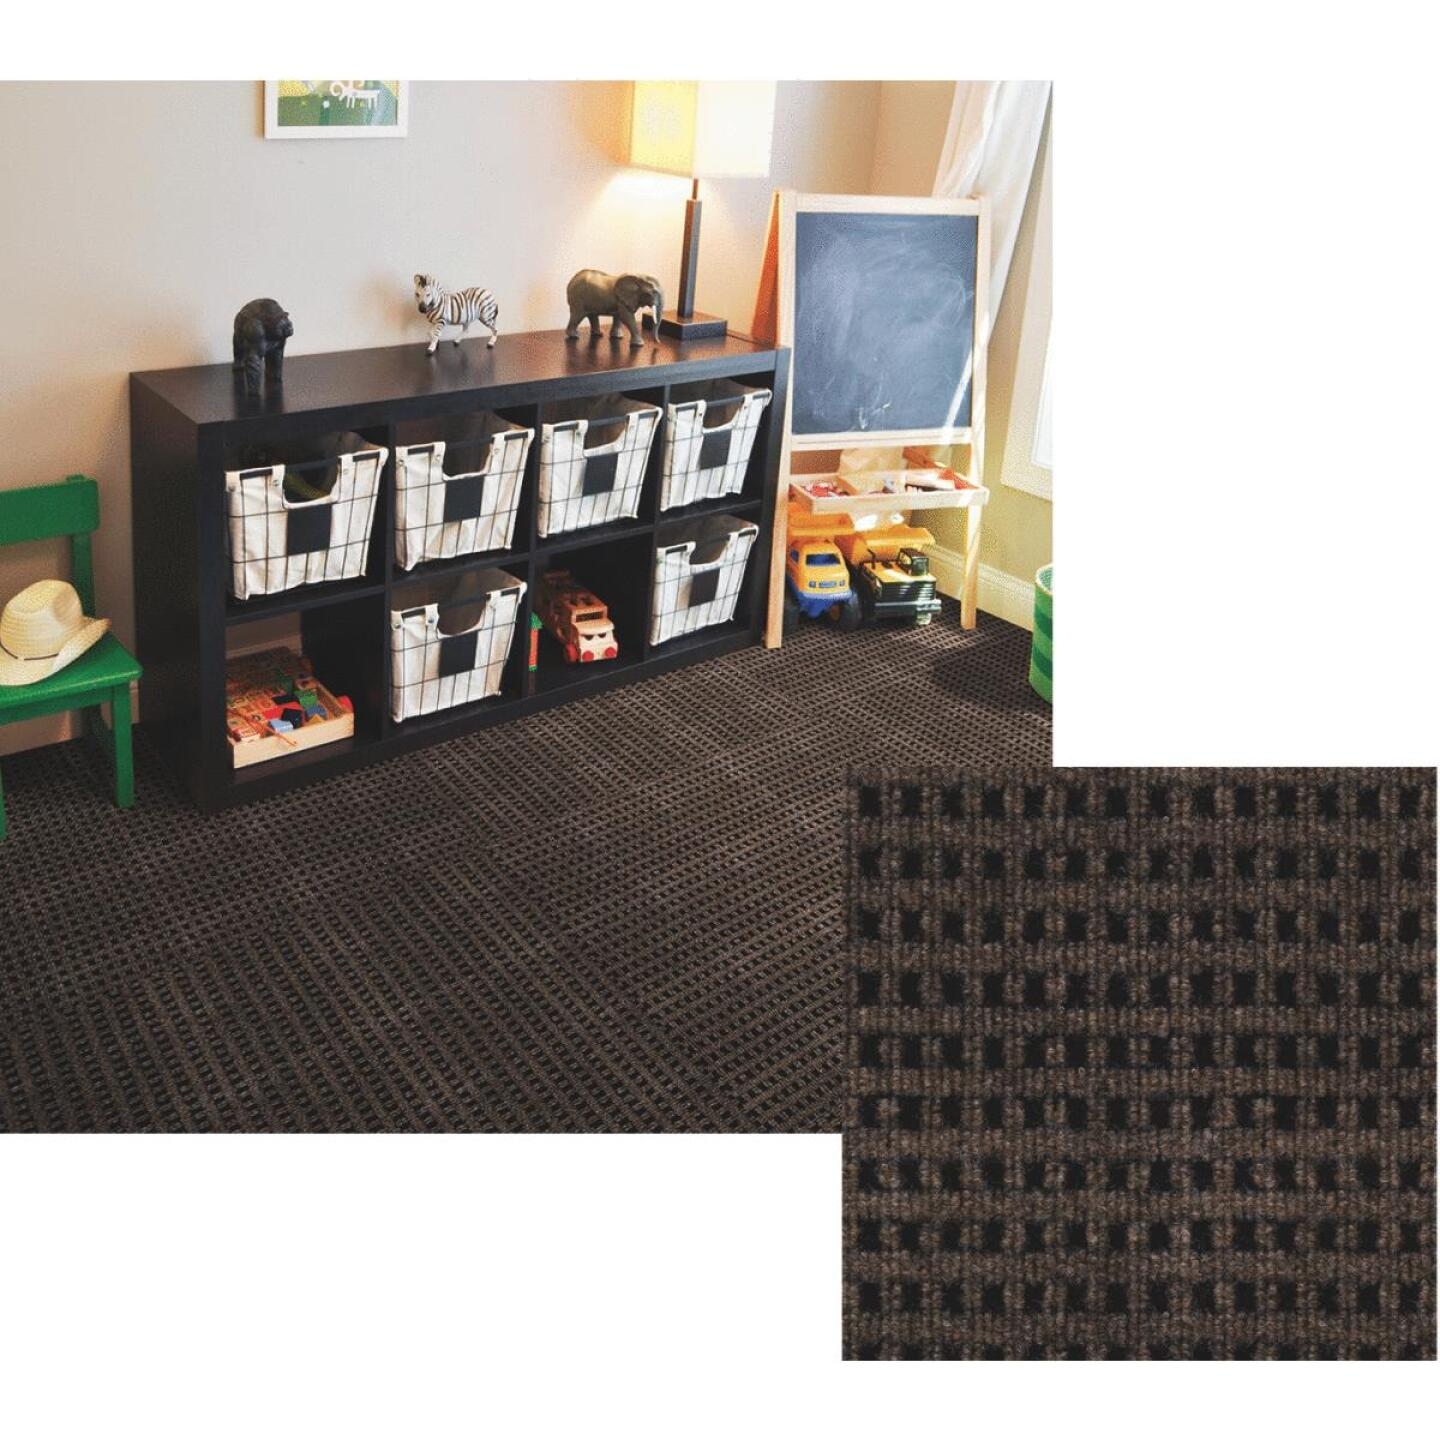 Smart Transformations 24 In. x 24 In. Espresso Mosaic Carpet Tile (15-Pack) Image 1